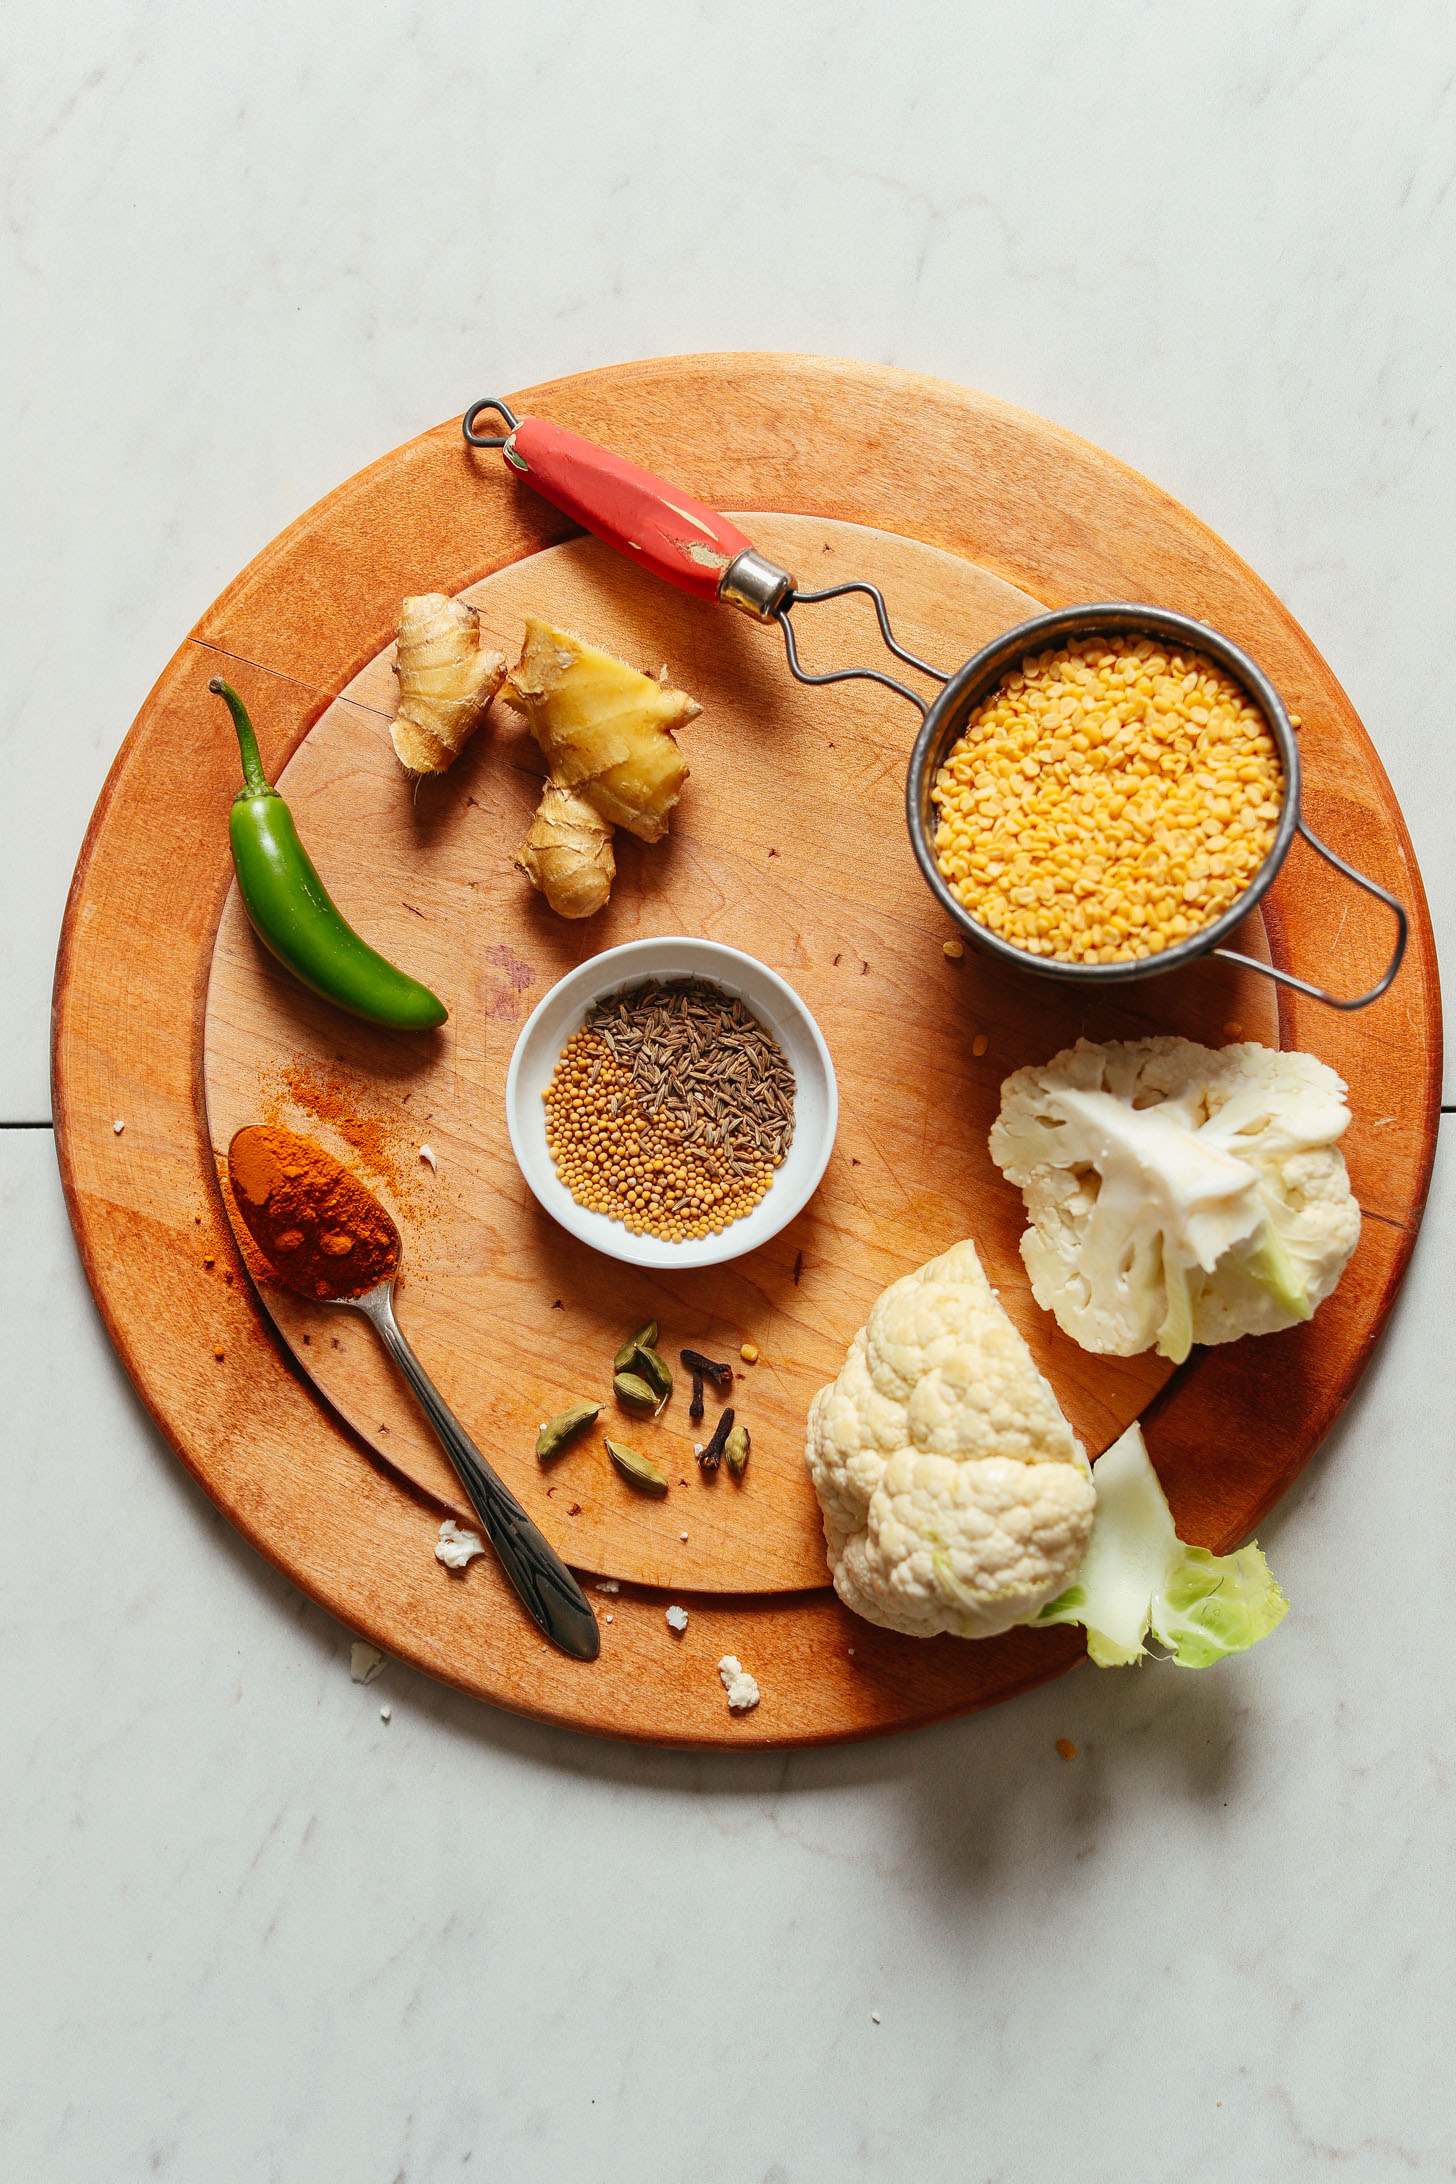 Wood cutting board showcasing ginger, serrano, cauliflower, and moong dal for making Cauliflower Rice Kitchari